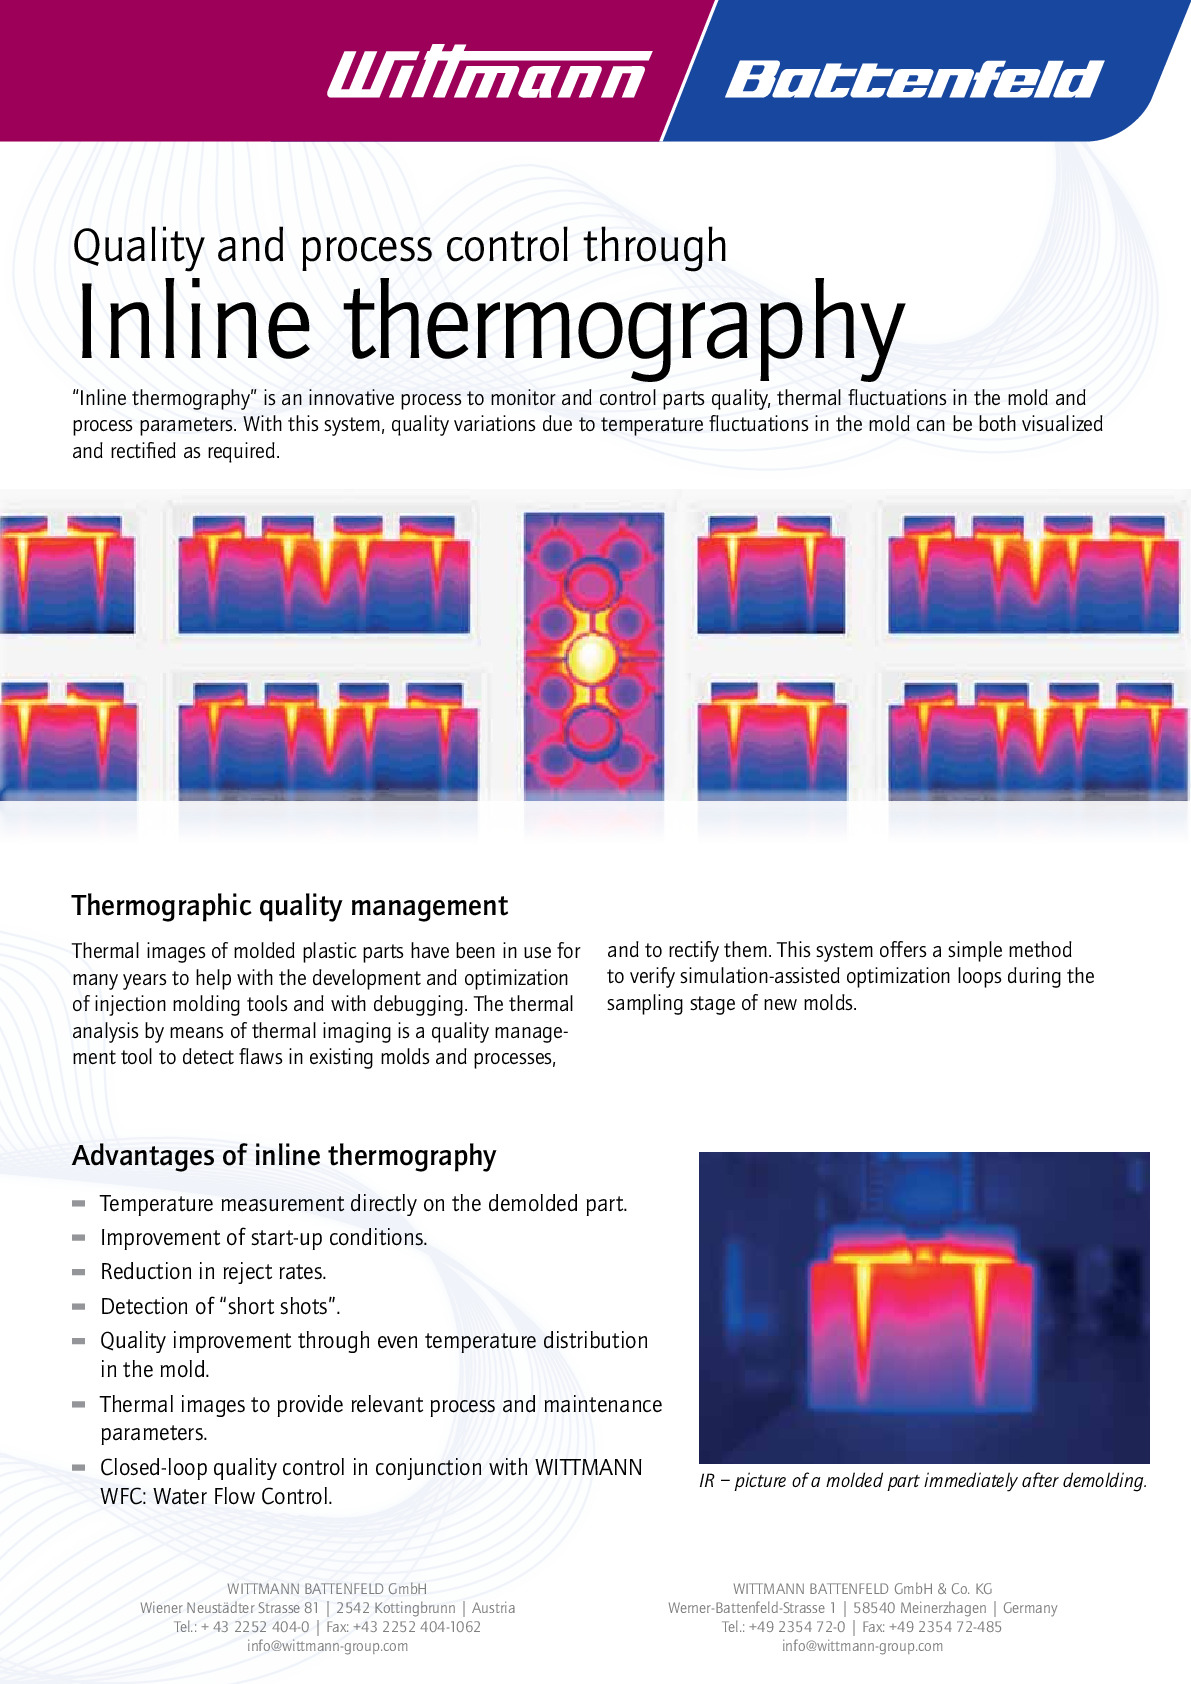 inline-thermography_en_09-2013